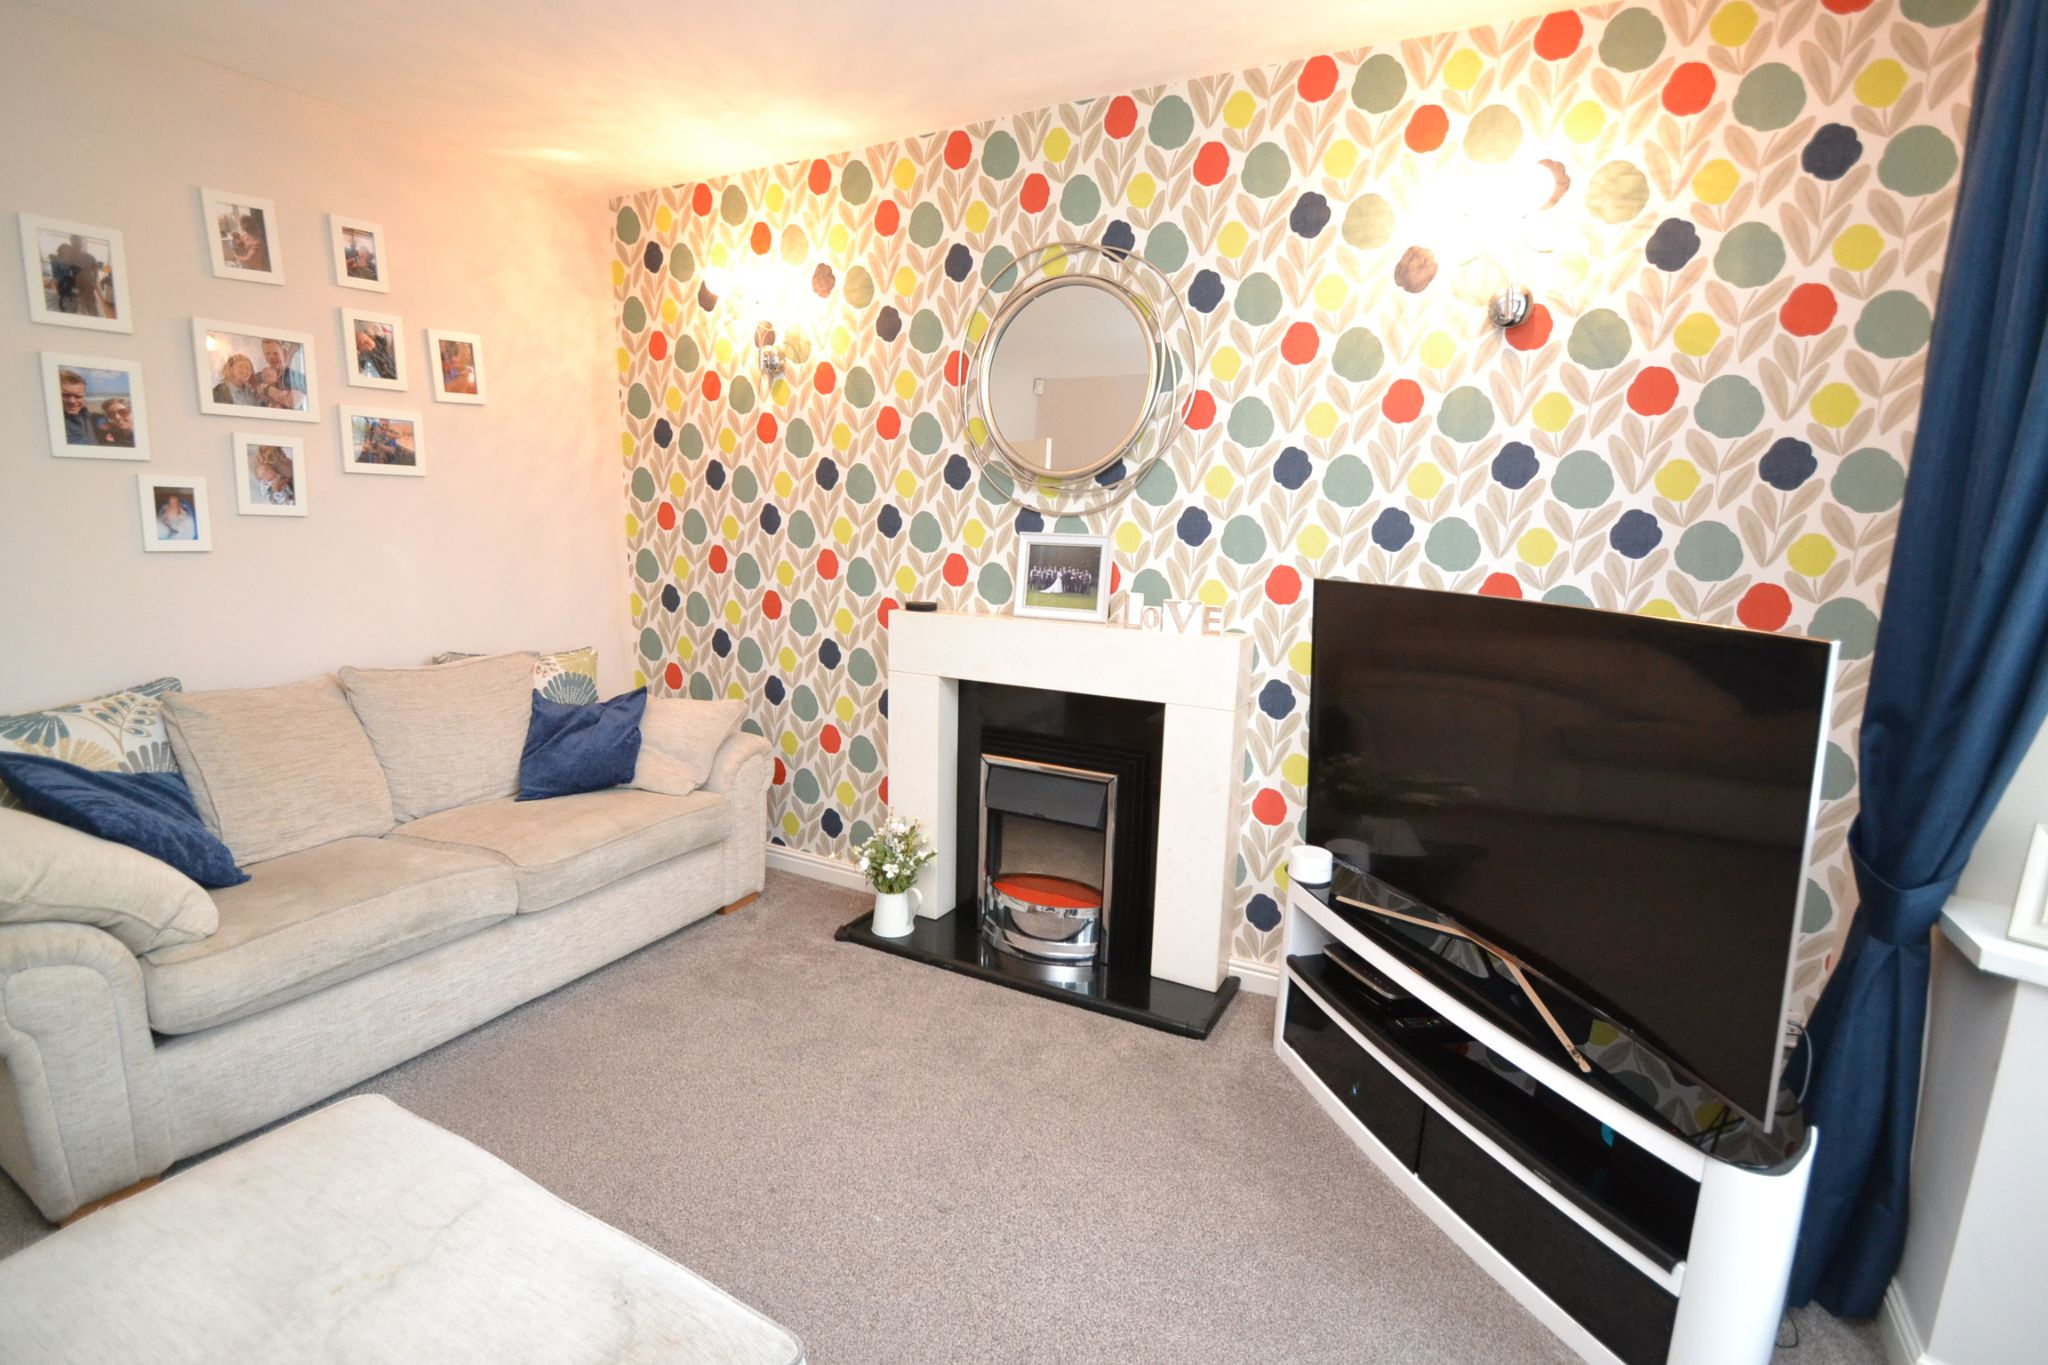 4 Bedroom Semi-detached House For Sale - Photograph 2